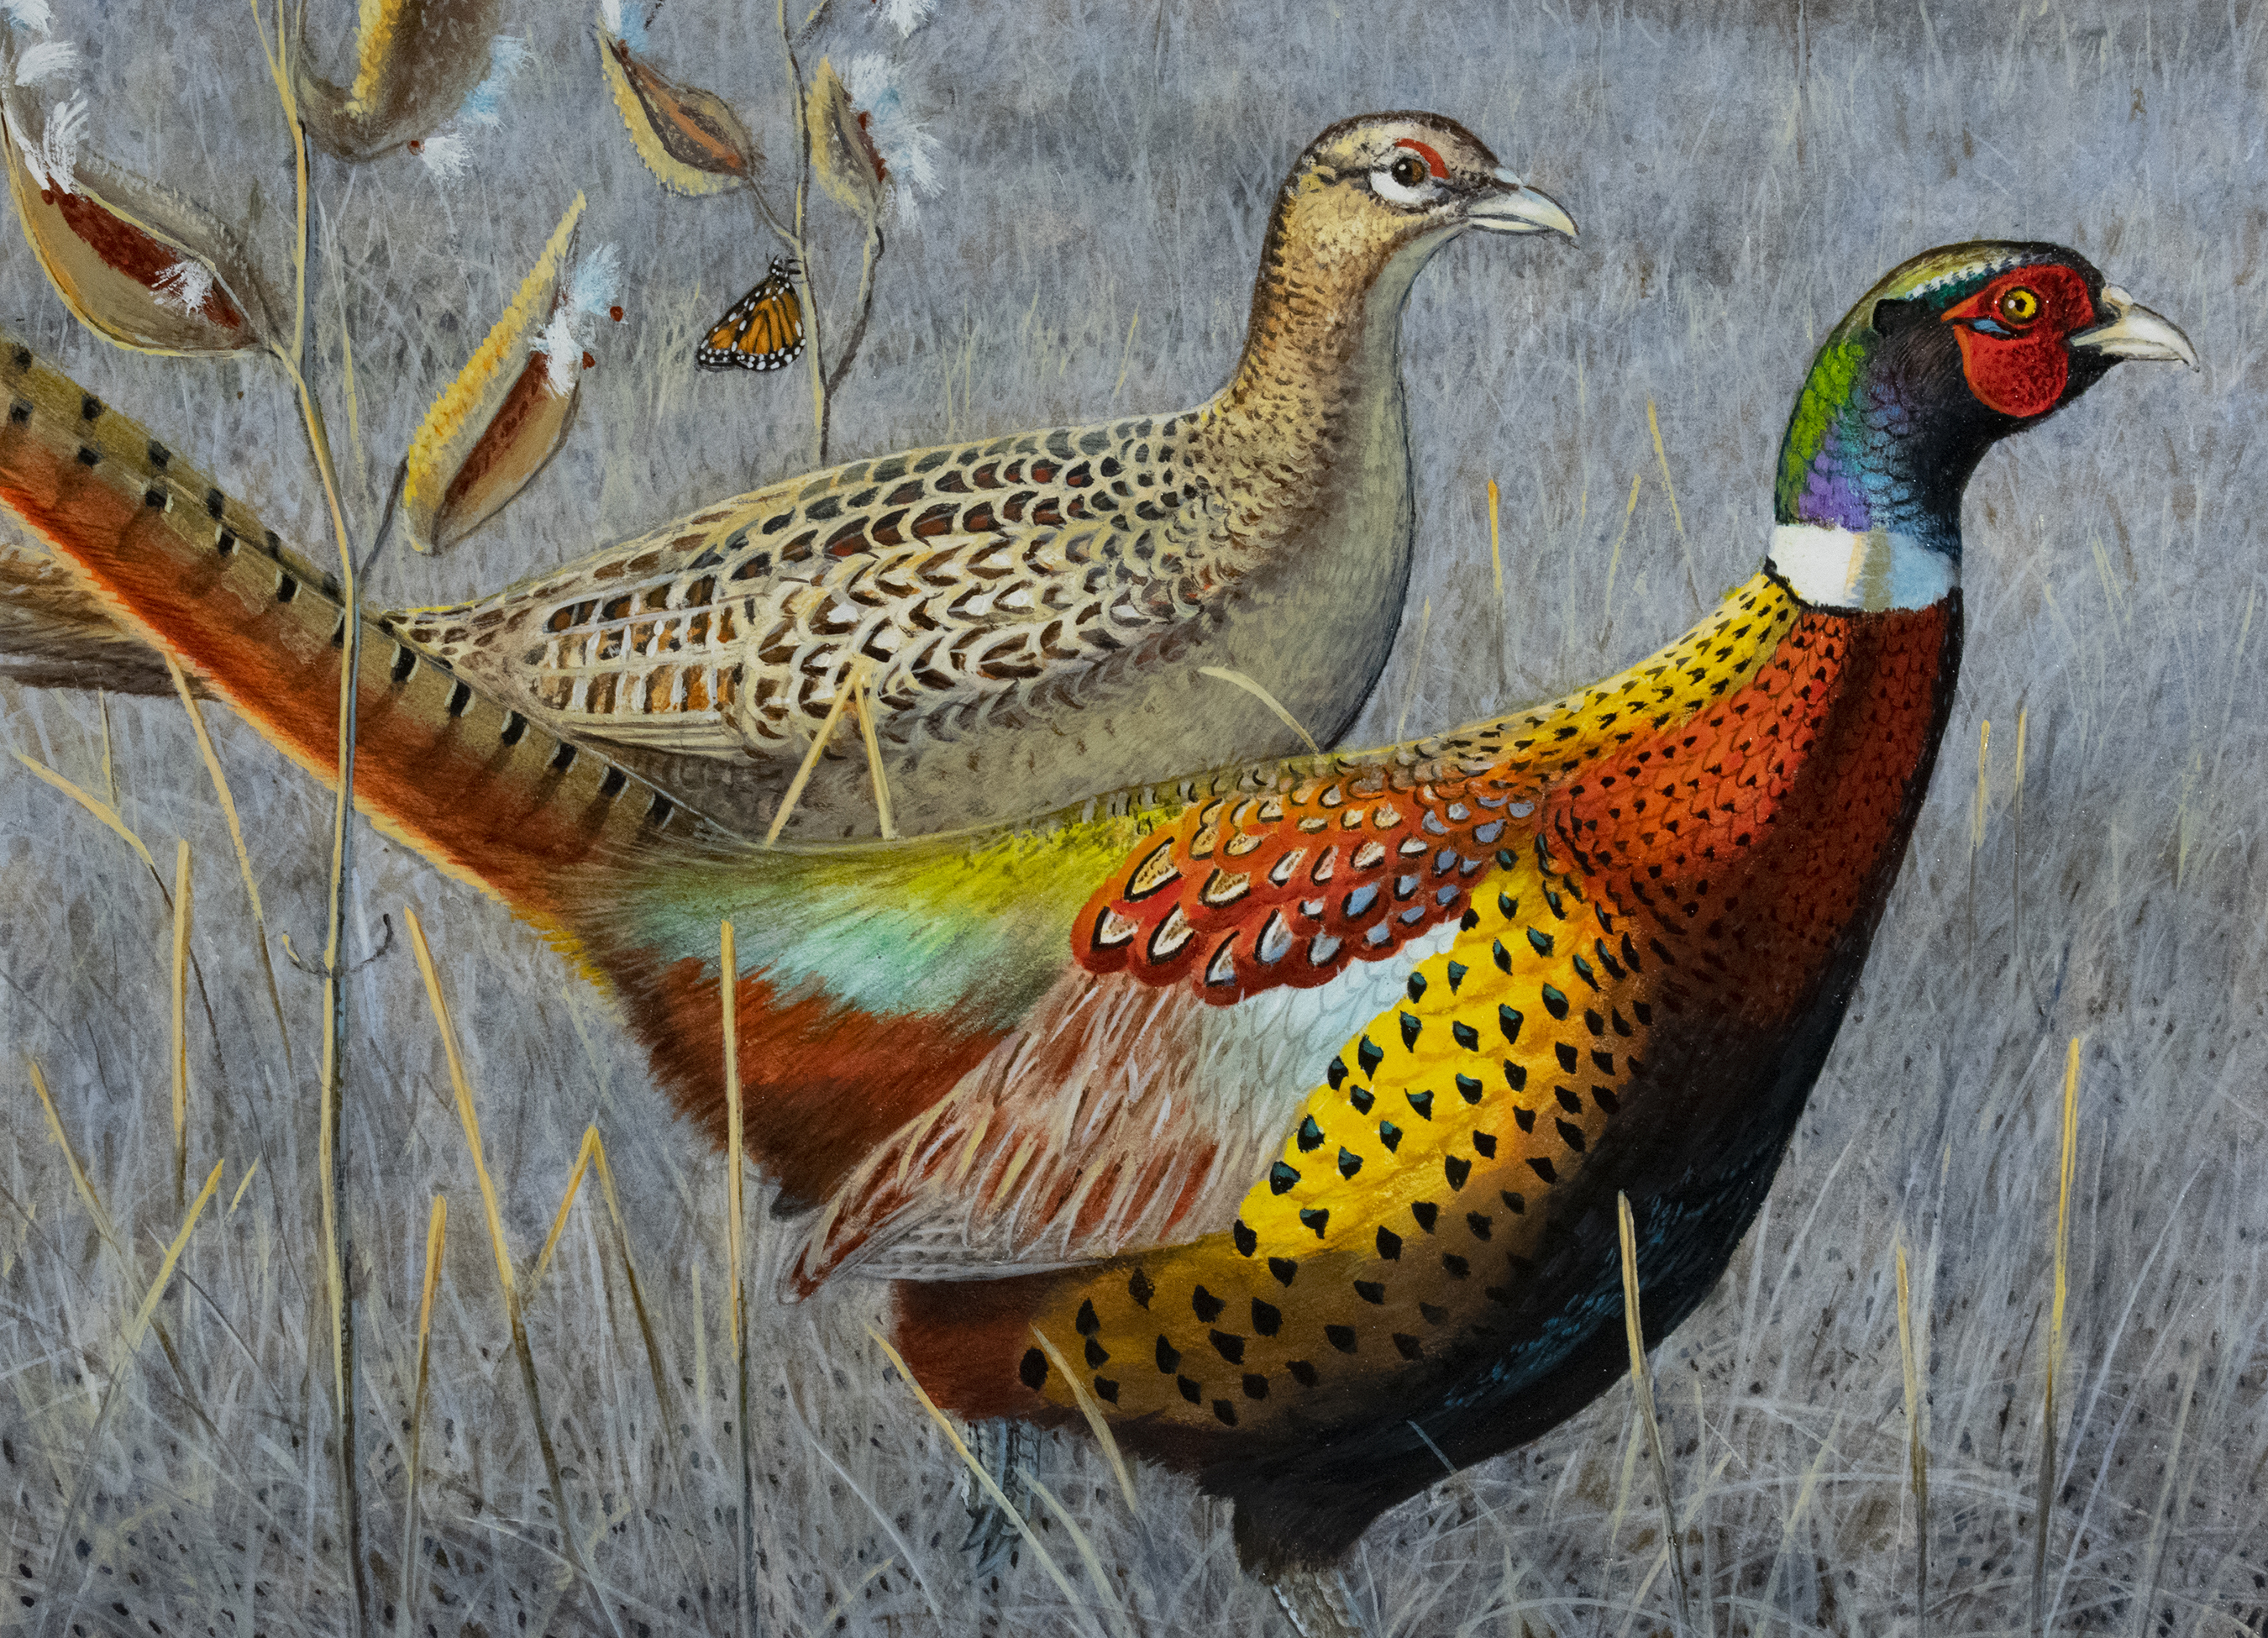 The 2021 pheasant stamp